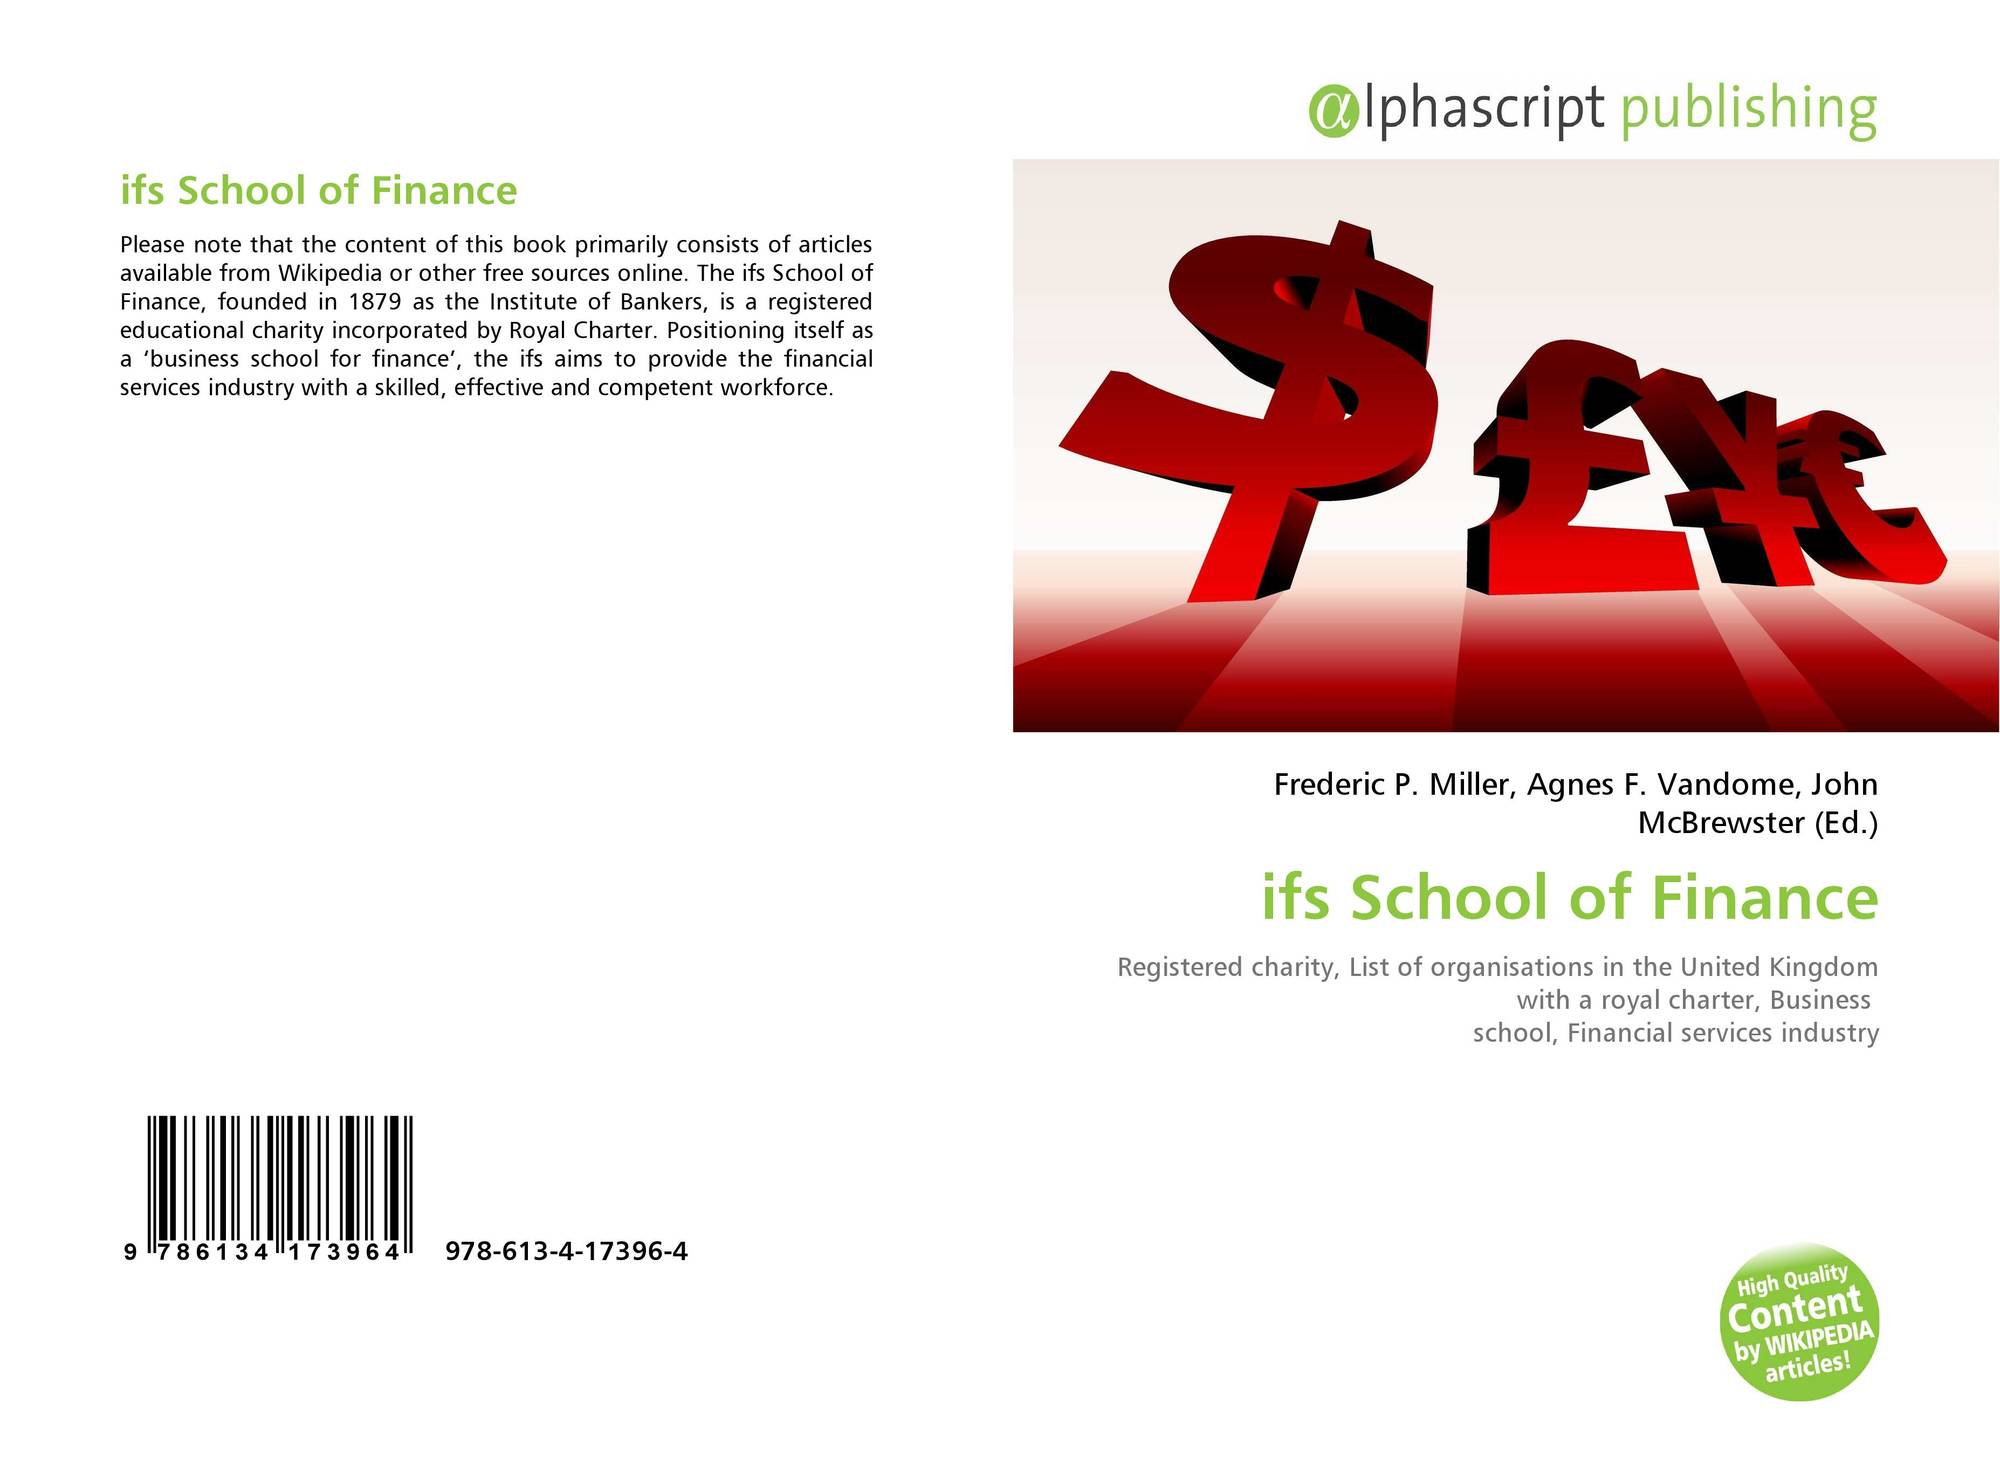 hight resolution of bookcover of ifs school of finance omni badge 9307e2201e5f762643a64561af3456be64a87707602f96b92ef18a9bbcada116